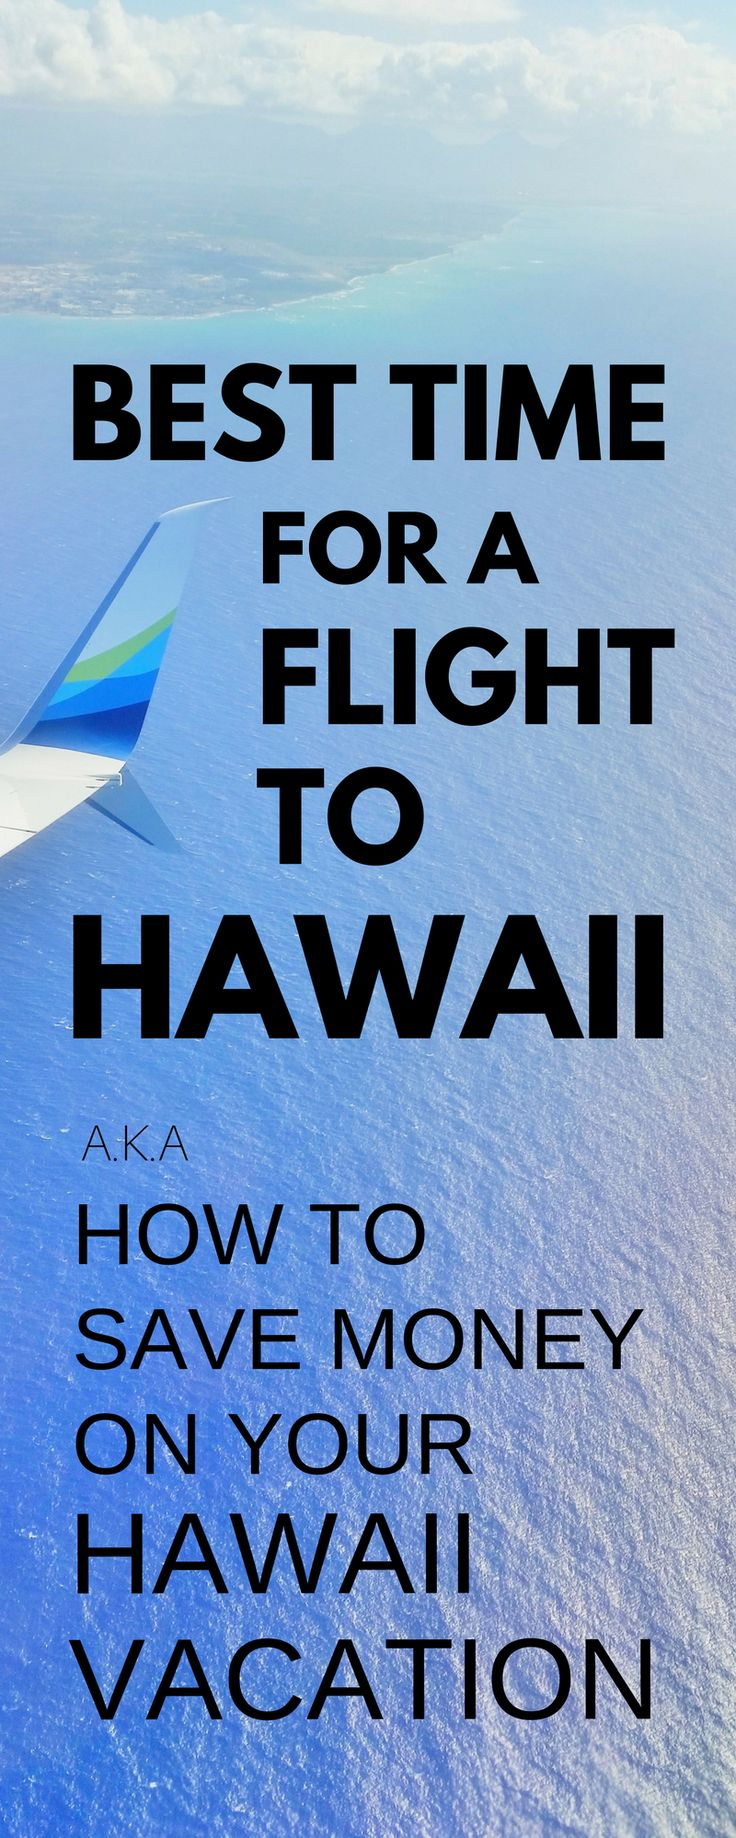 Hawaii vacation tips: First things to do: how to get, how to find cheap flights to Hawaii whether in US or it's international travel! Oahu, Maui, Kauai, Big Island hikes, snorkeling beaches await! Book best airline tickets with cheapest flights without thinking too much about when to buy ;) start the checklist of bucket list destinations, world trip adventures on a budget. Save money - travel tips, ideas! Destination wedding, honeymoon... #hawaii #oahu #maui #kauai #bigisland #cheapflights